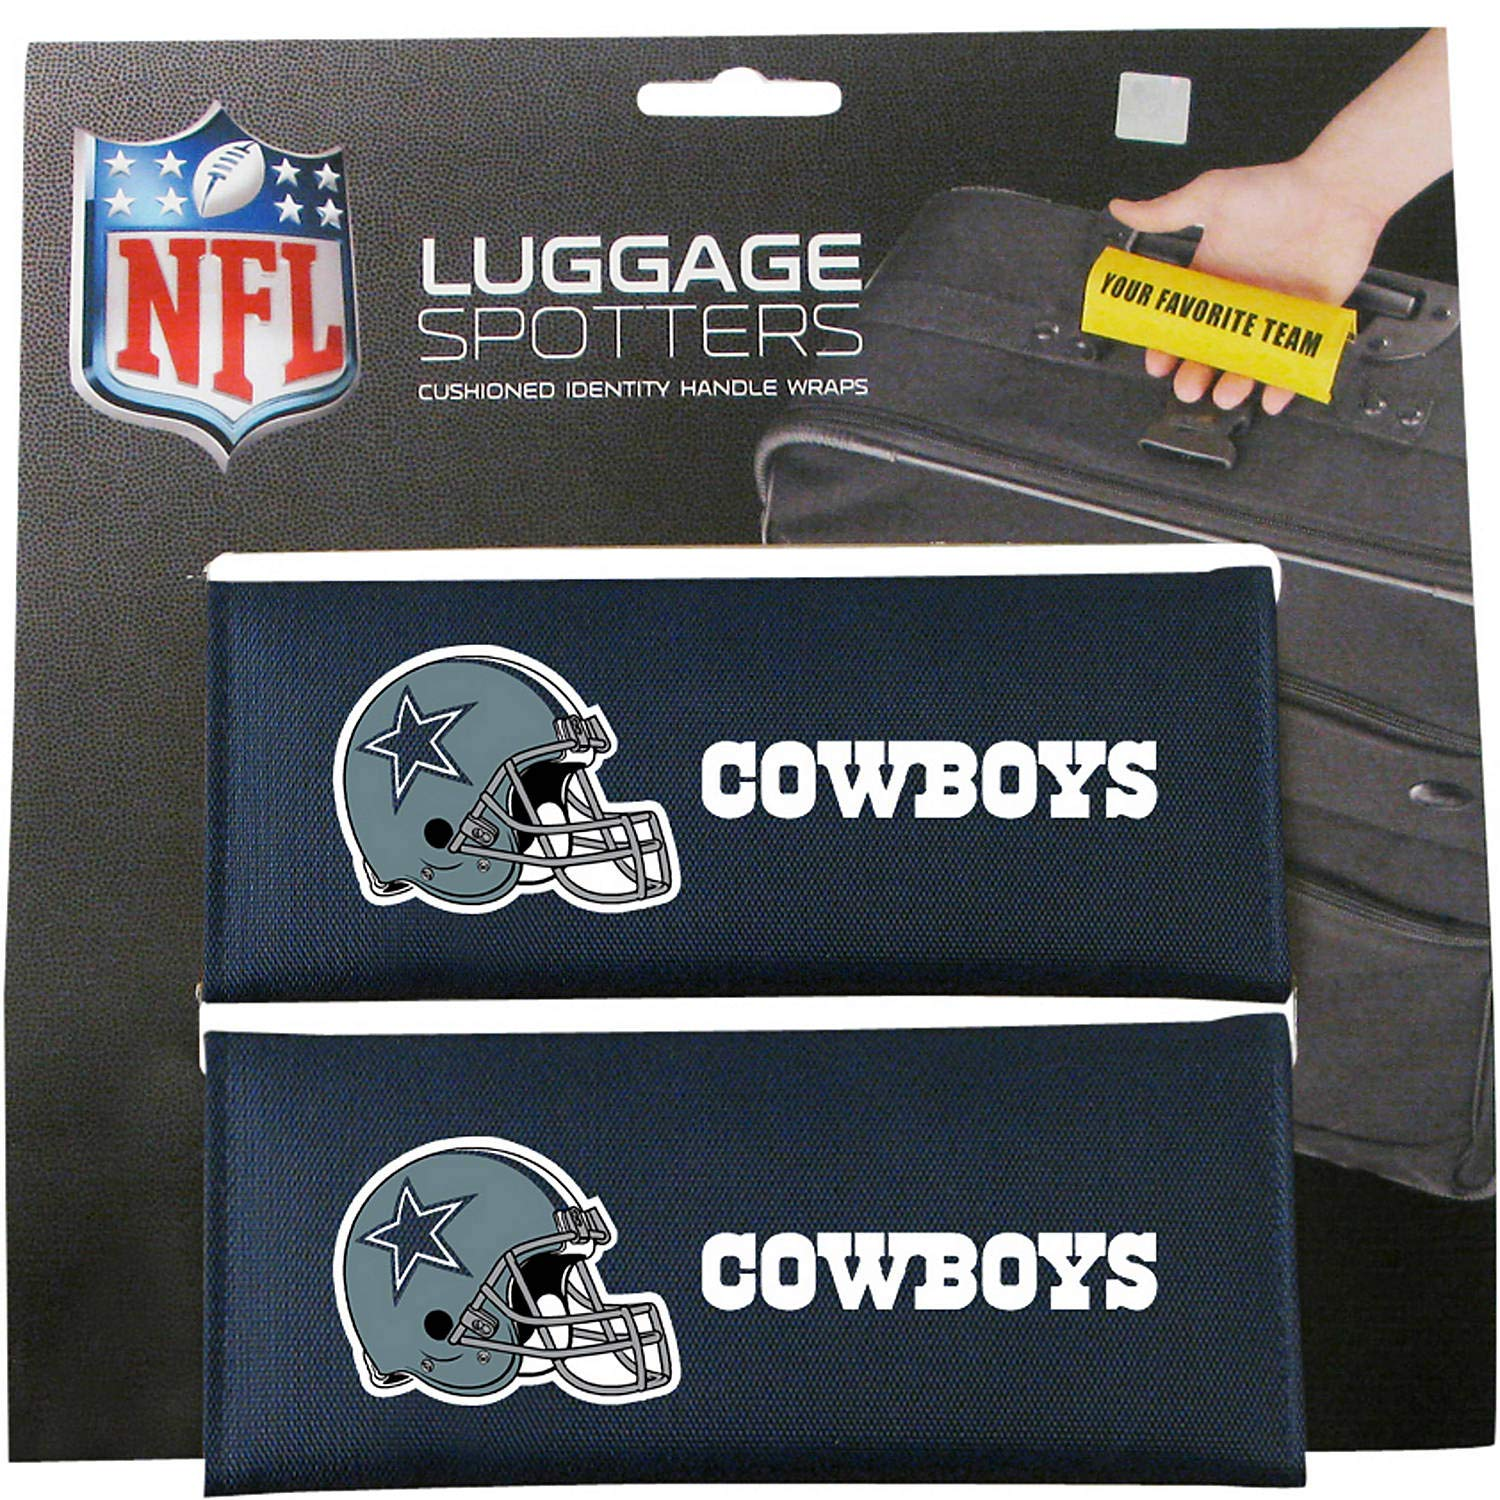 COWBOYS Luggage Spotter Suitcase Handle Wrap Bag Tag Locator with I.D. Pocket (2-pack) - CLOSEOUT! THEY ARE SELLING OUT FAST!